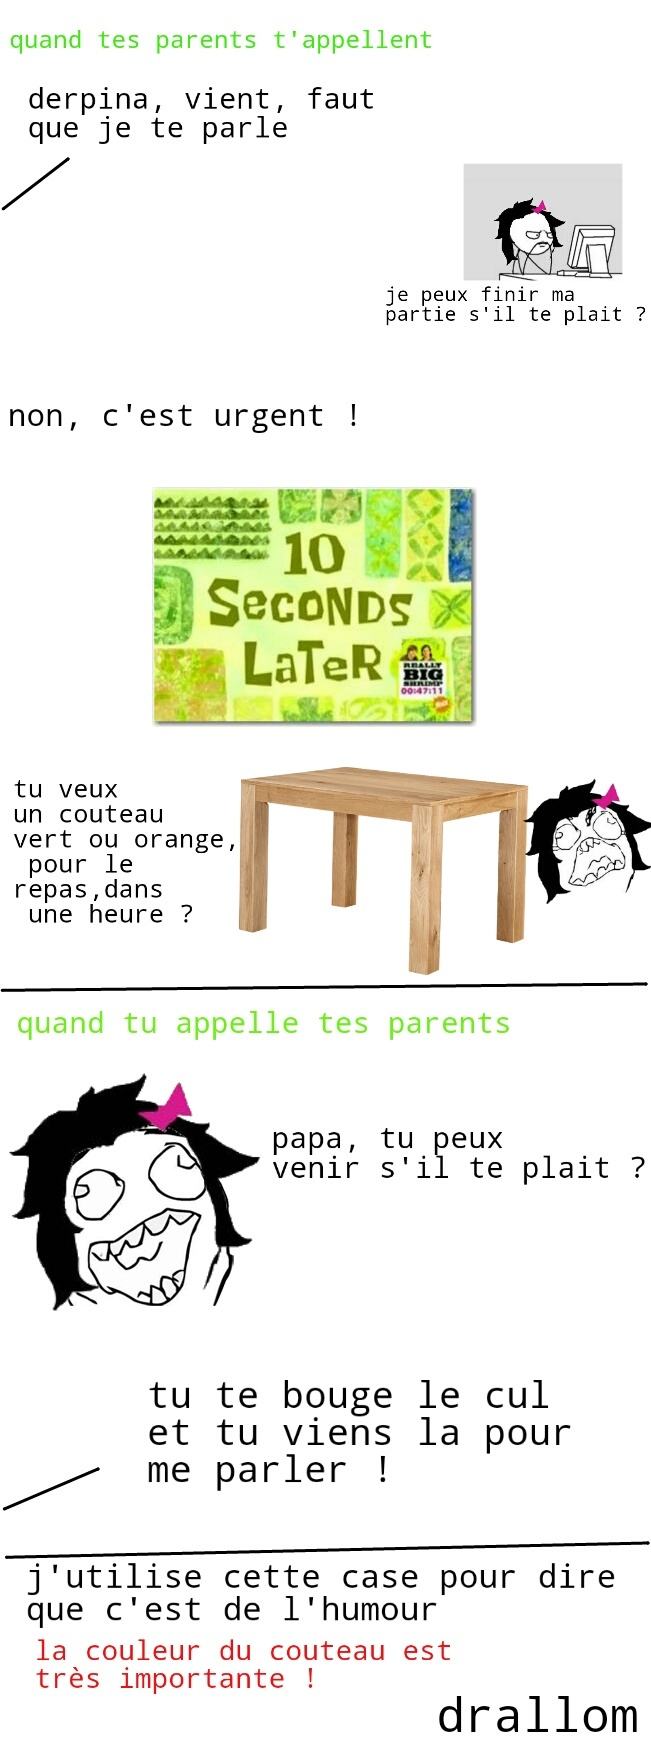 "error 404 : title not found    ou alors je met un truc du genre ""les parents"" - meme"